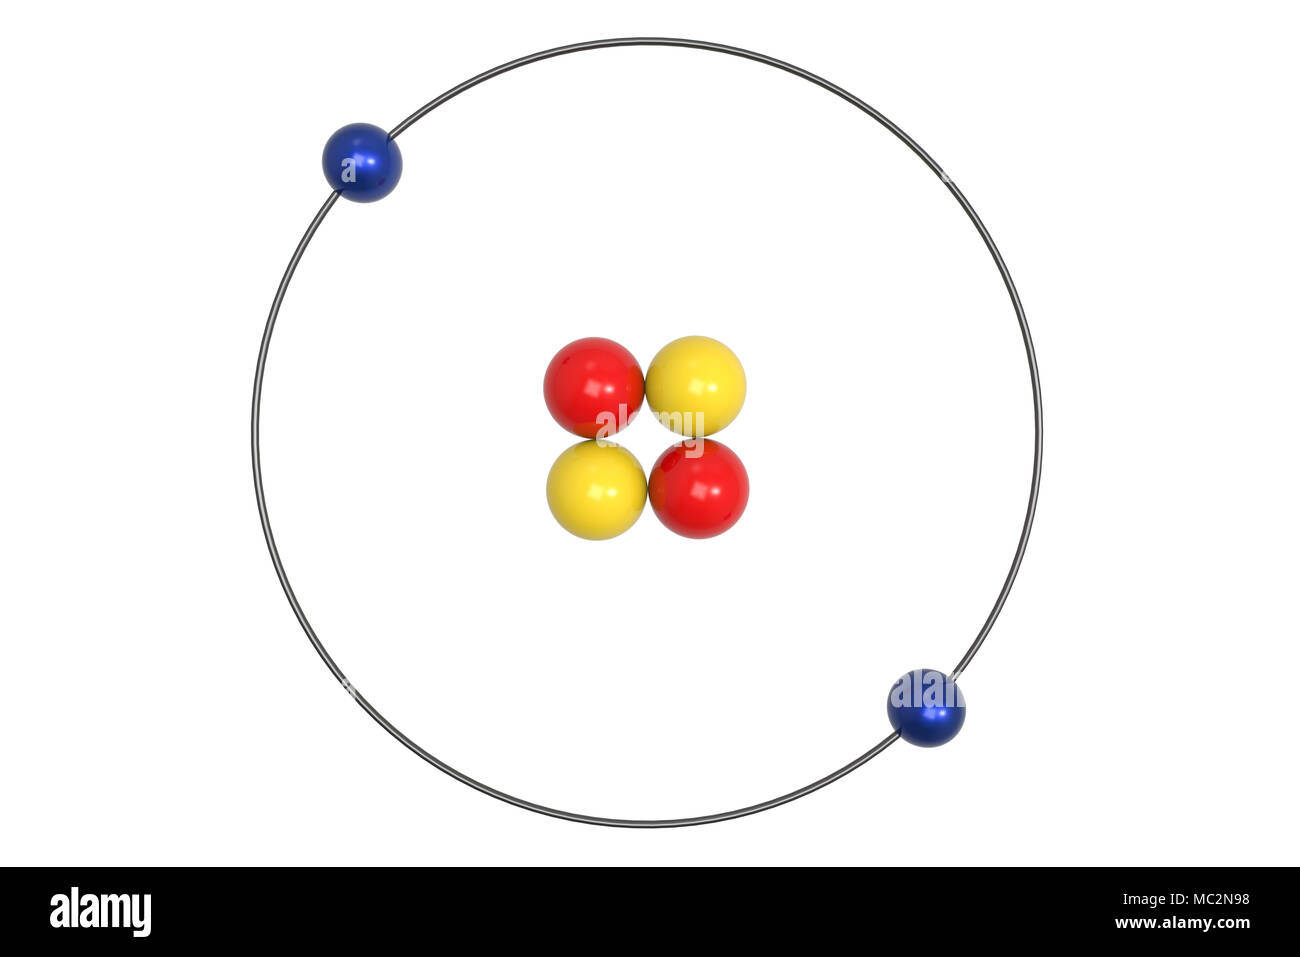 hight resolution of helium atom bohr model with proton neutron and electron science and chemical concept 3d